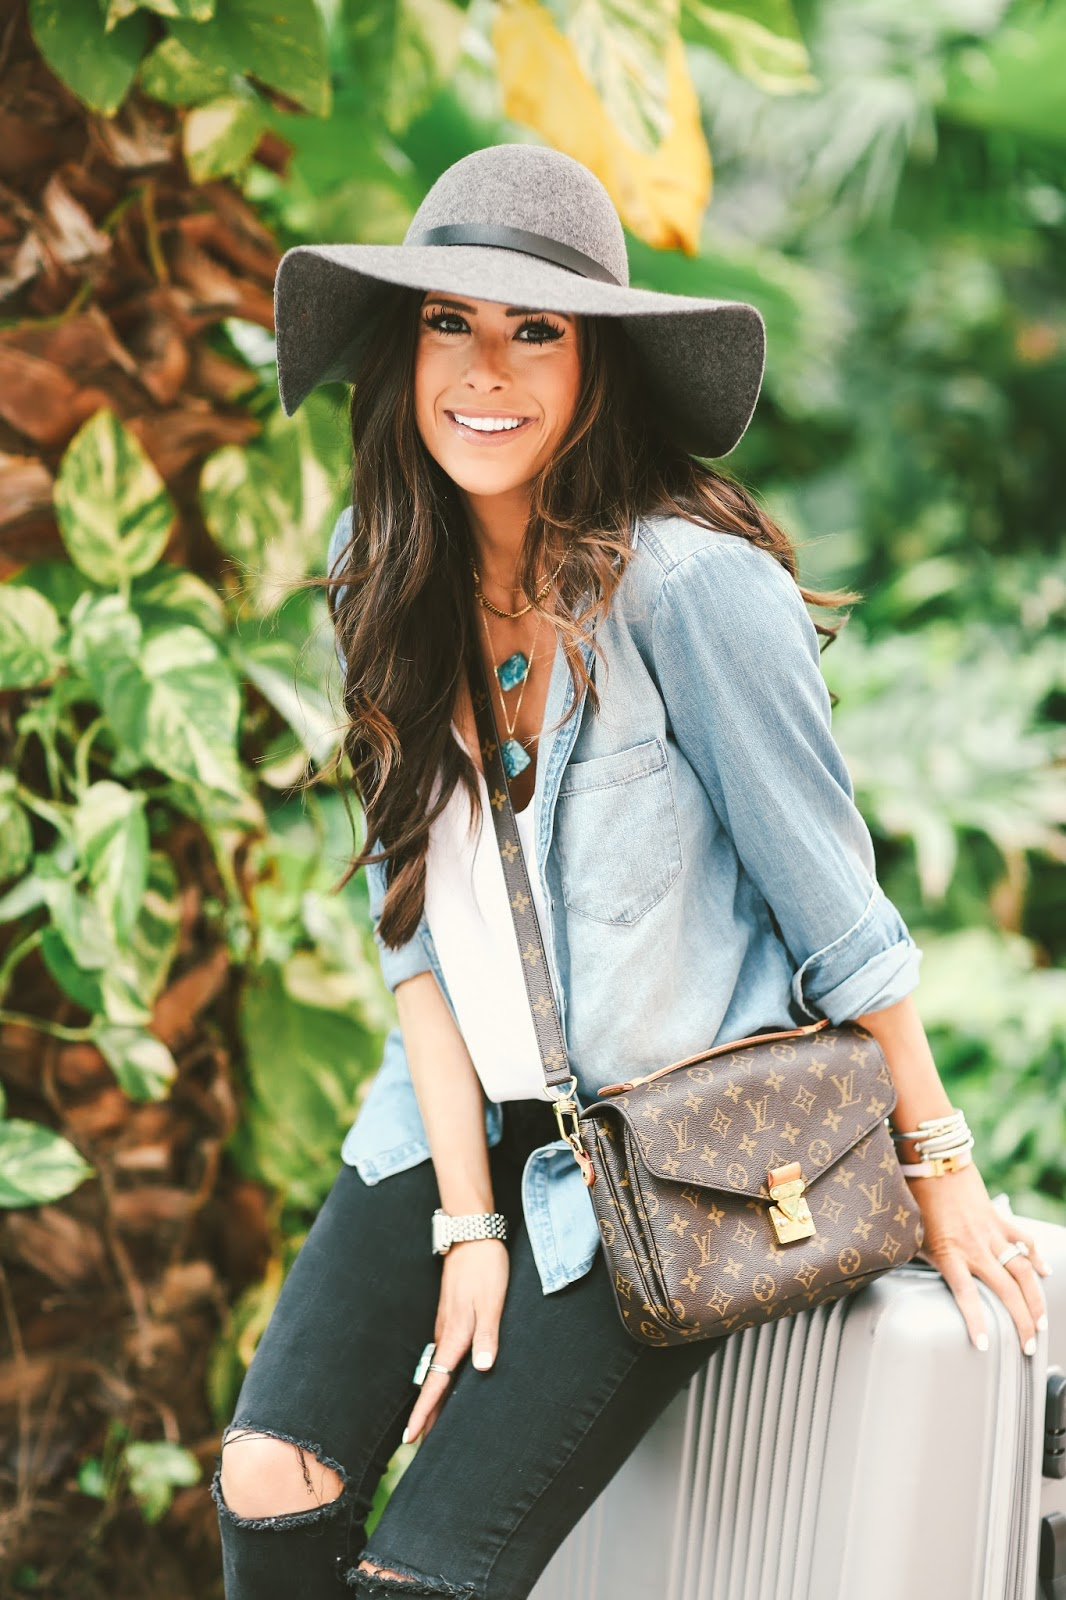 emily gemma, the sweetest thing blog, BP chambray, how to style chambray in spring and summer, chambray outfit ideas, pinterest travel outfit ideas, chambray shirt unbuttoned over tank top outfit, H&M hat, grey floppy hat, louis vuitton pochette metis, michael kors cross body, vanessa mooney jewelry, turquoise necklace vanessa mooney, topshop tank tops white, airport outfits cute, stylish outfits for airport, stylish outfit ideas for traveling pinterest, mother looker denim black, vince camuto conley bootie, grey vince camuto bootie, what to wear to the bahamas in february